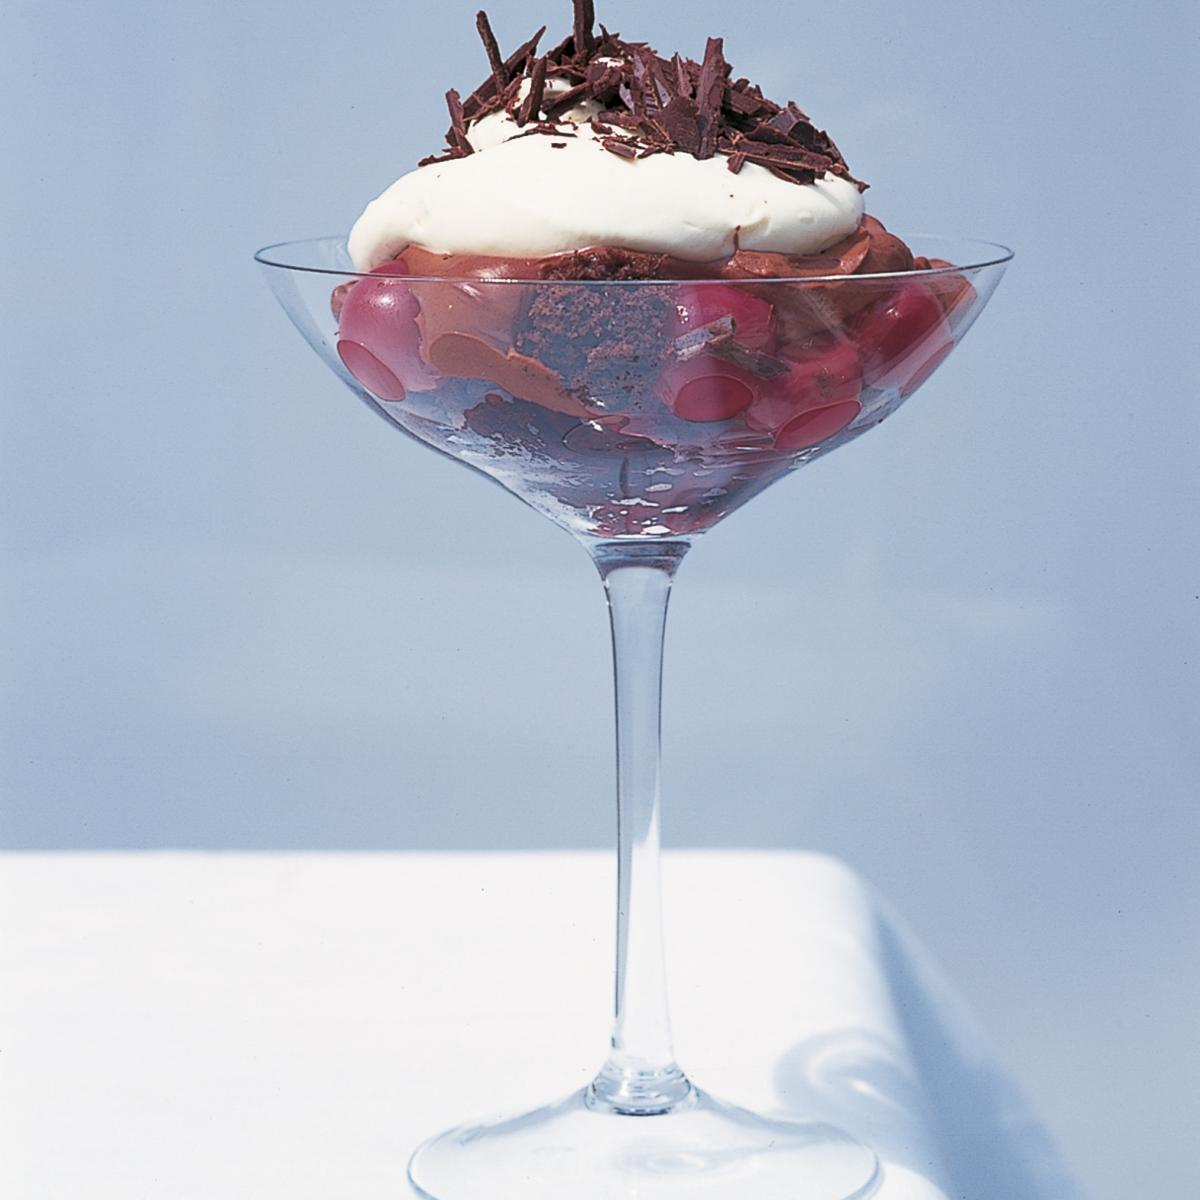 A picture of Delia's Cheat's Chocolate Trifle recipe